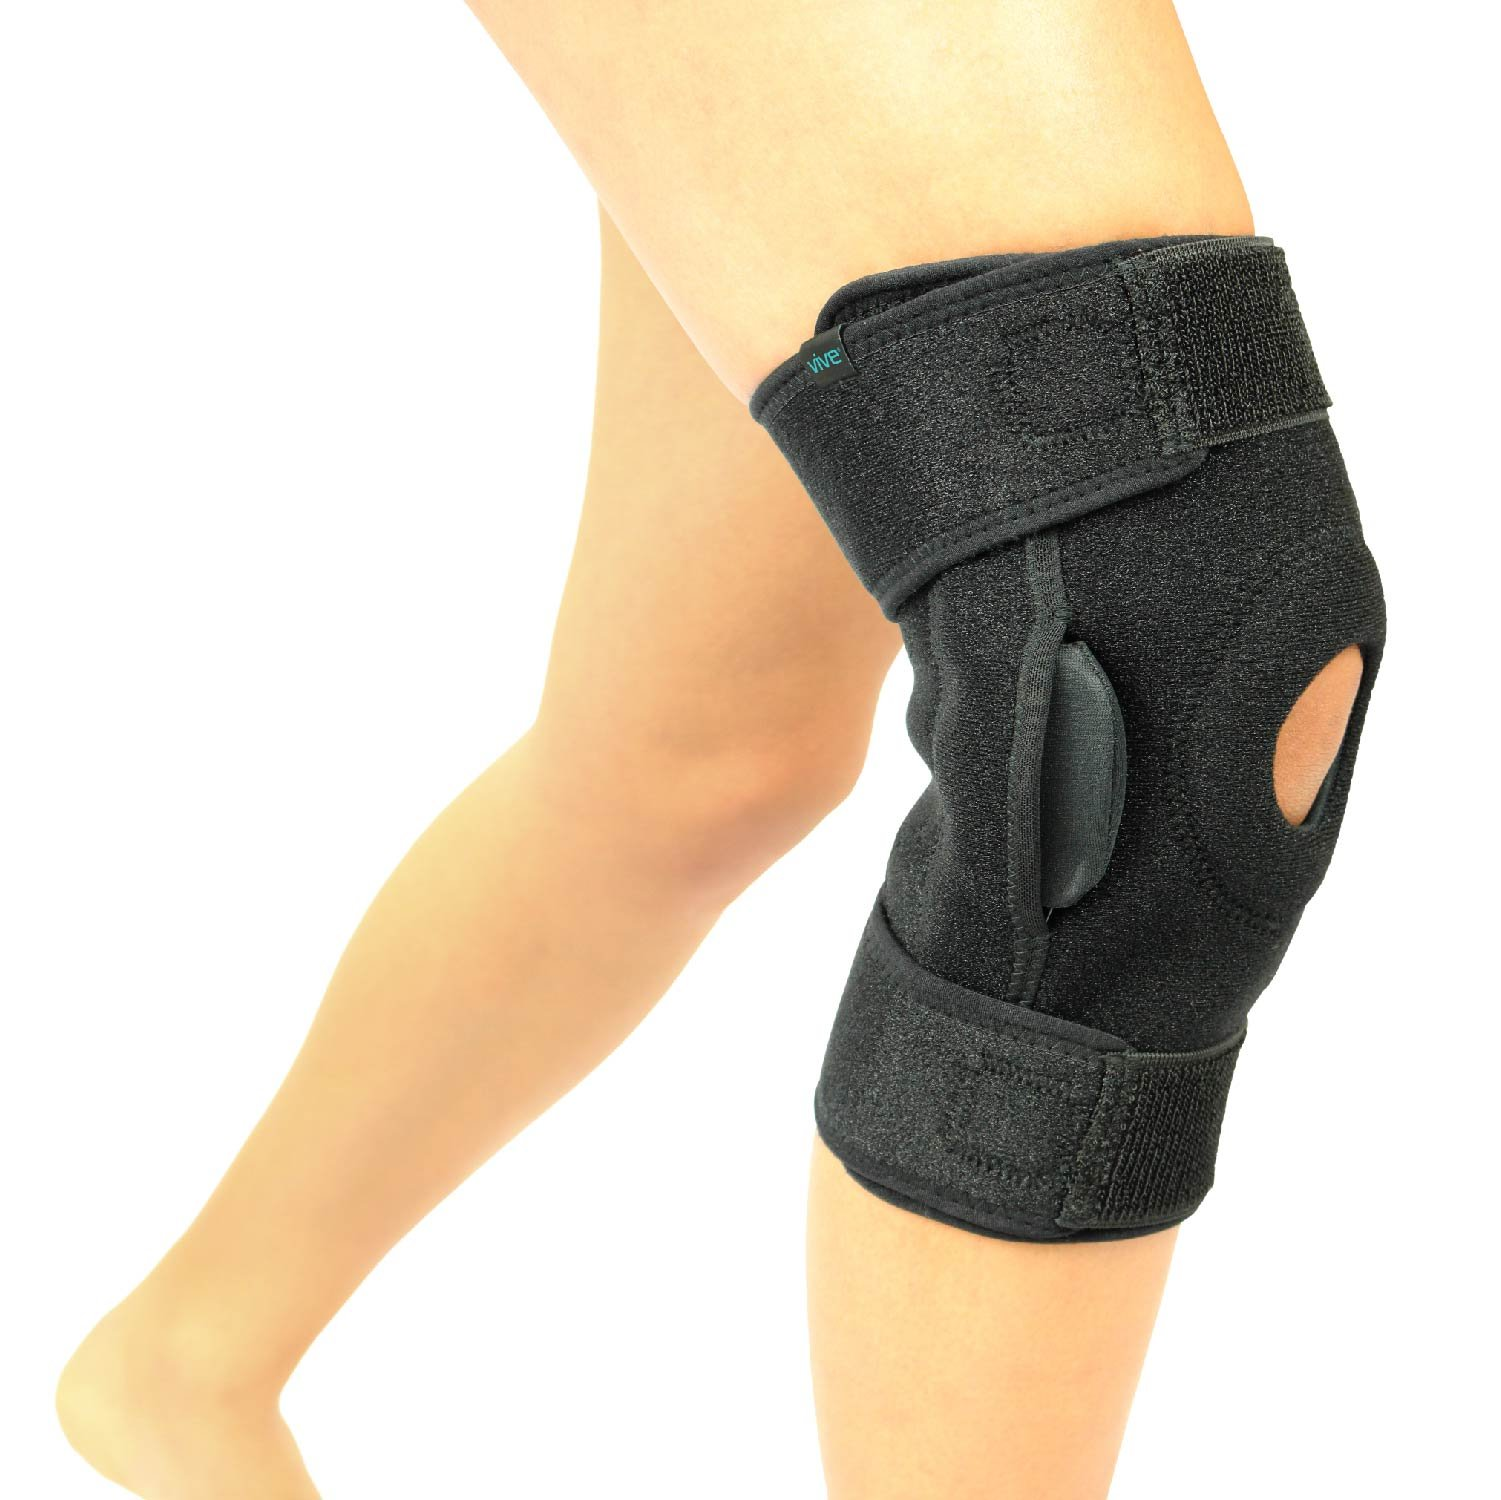 Vive Hinged Knee Brace Compression